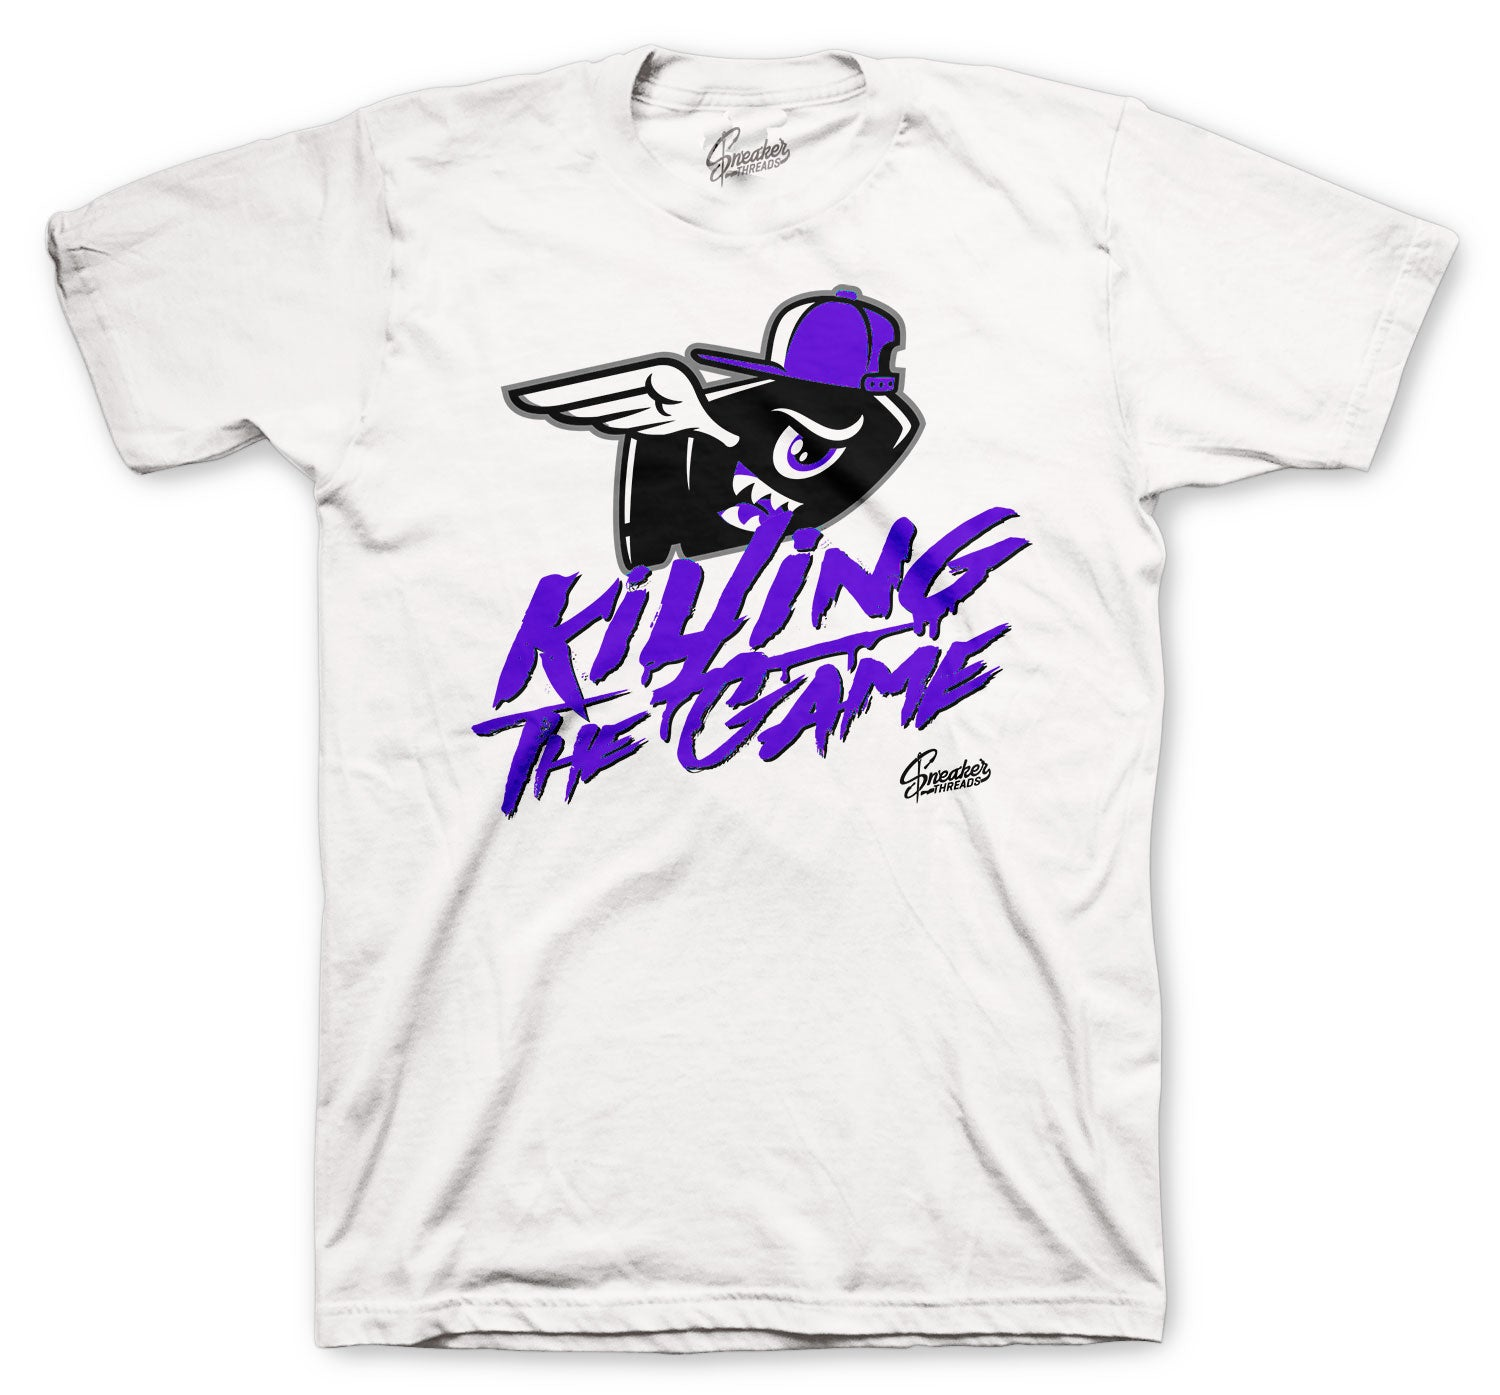 Jordan 12 Dark Concord Shirt - Killing Game - White